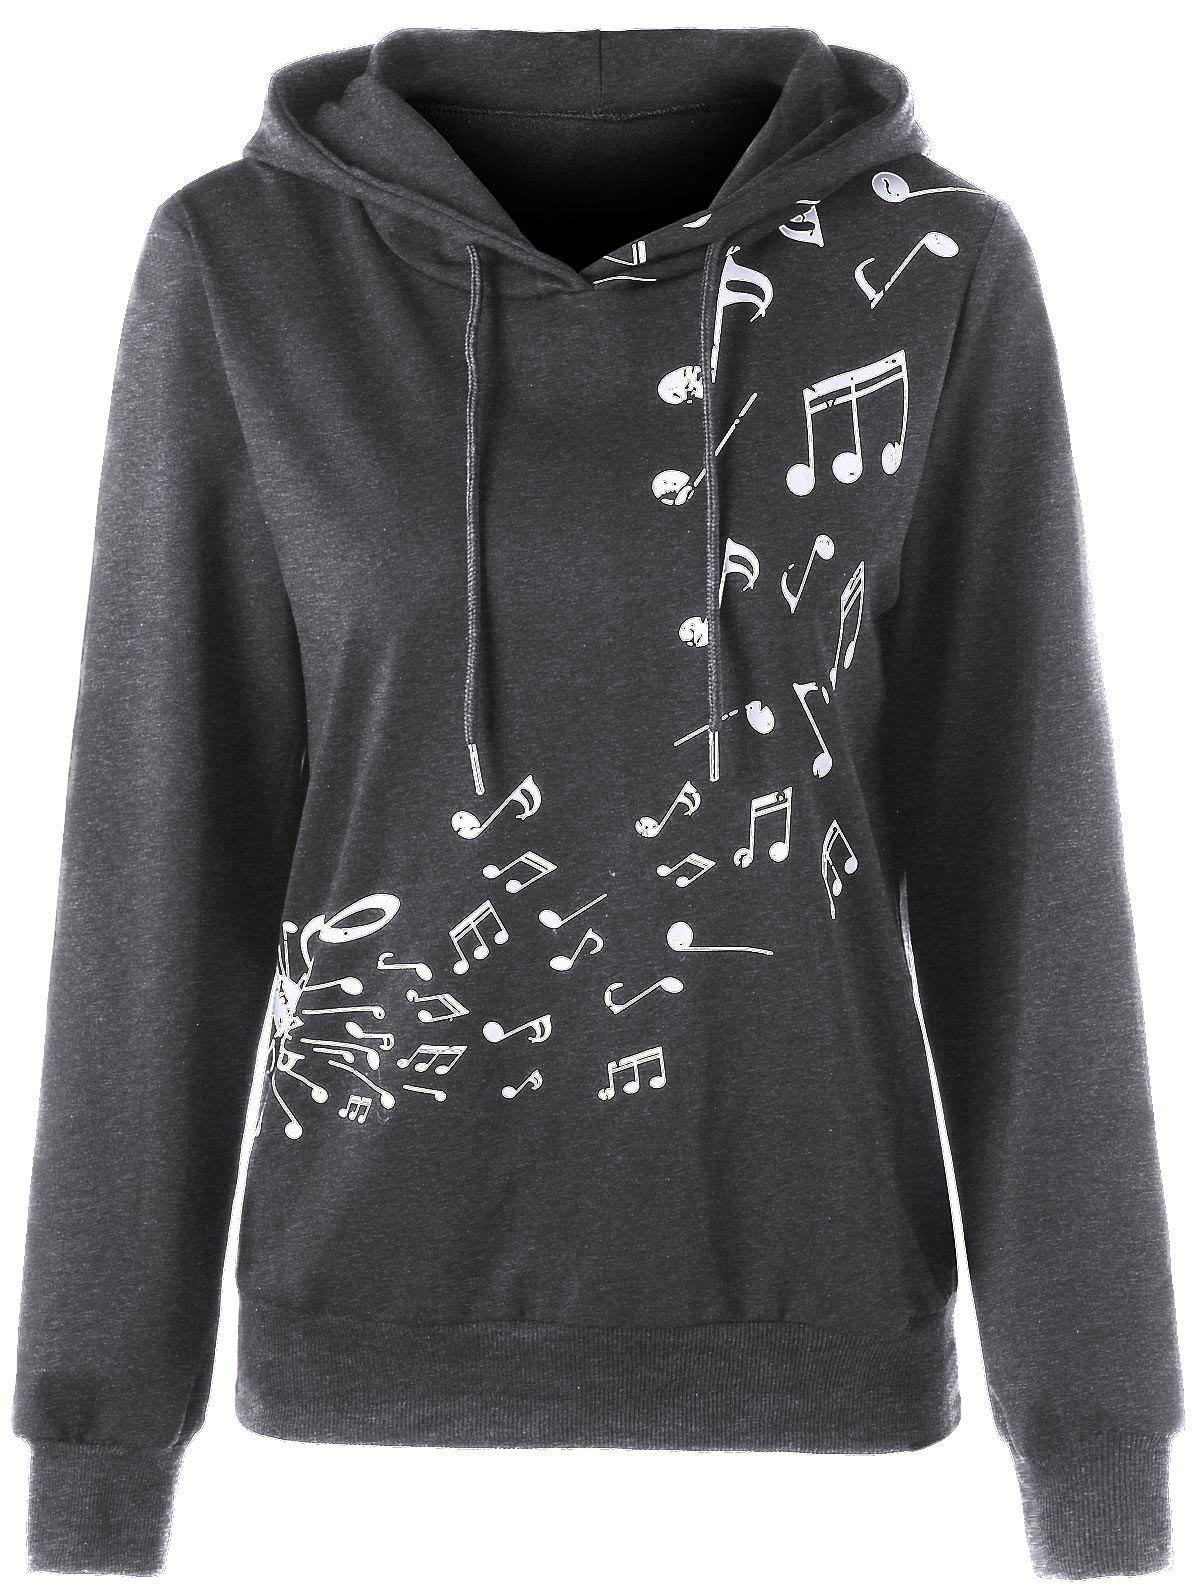 Two Tone Music Note Hoodie - DEEP GRAY XL